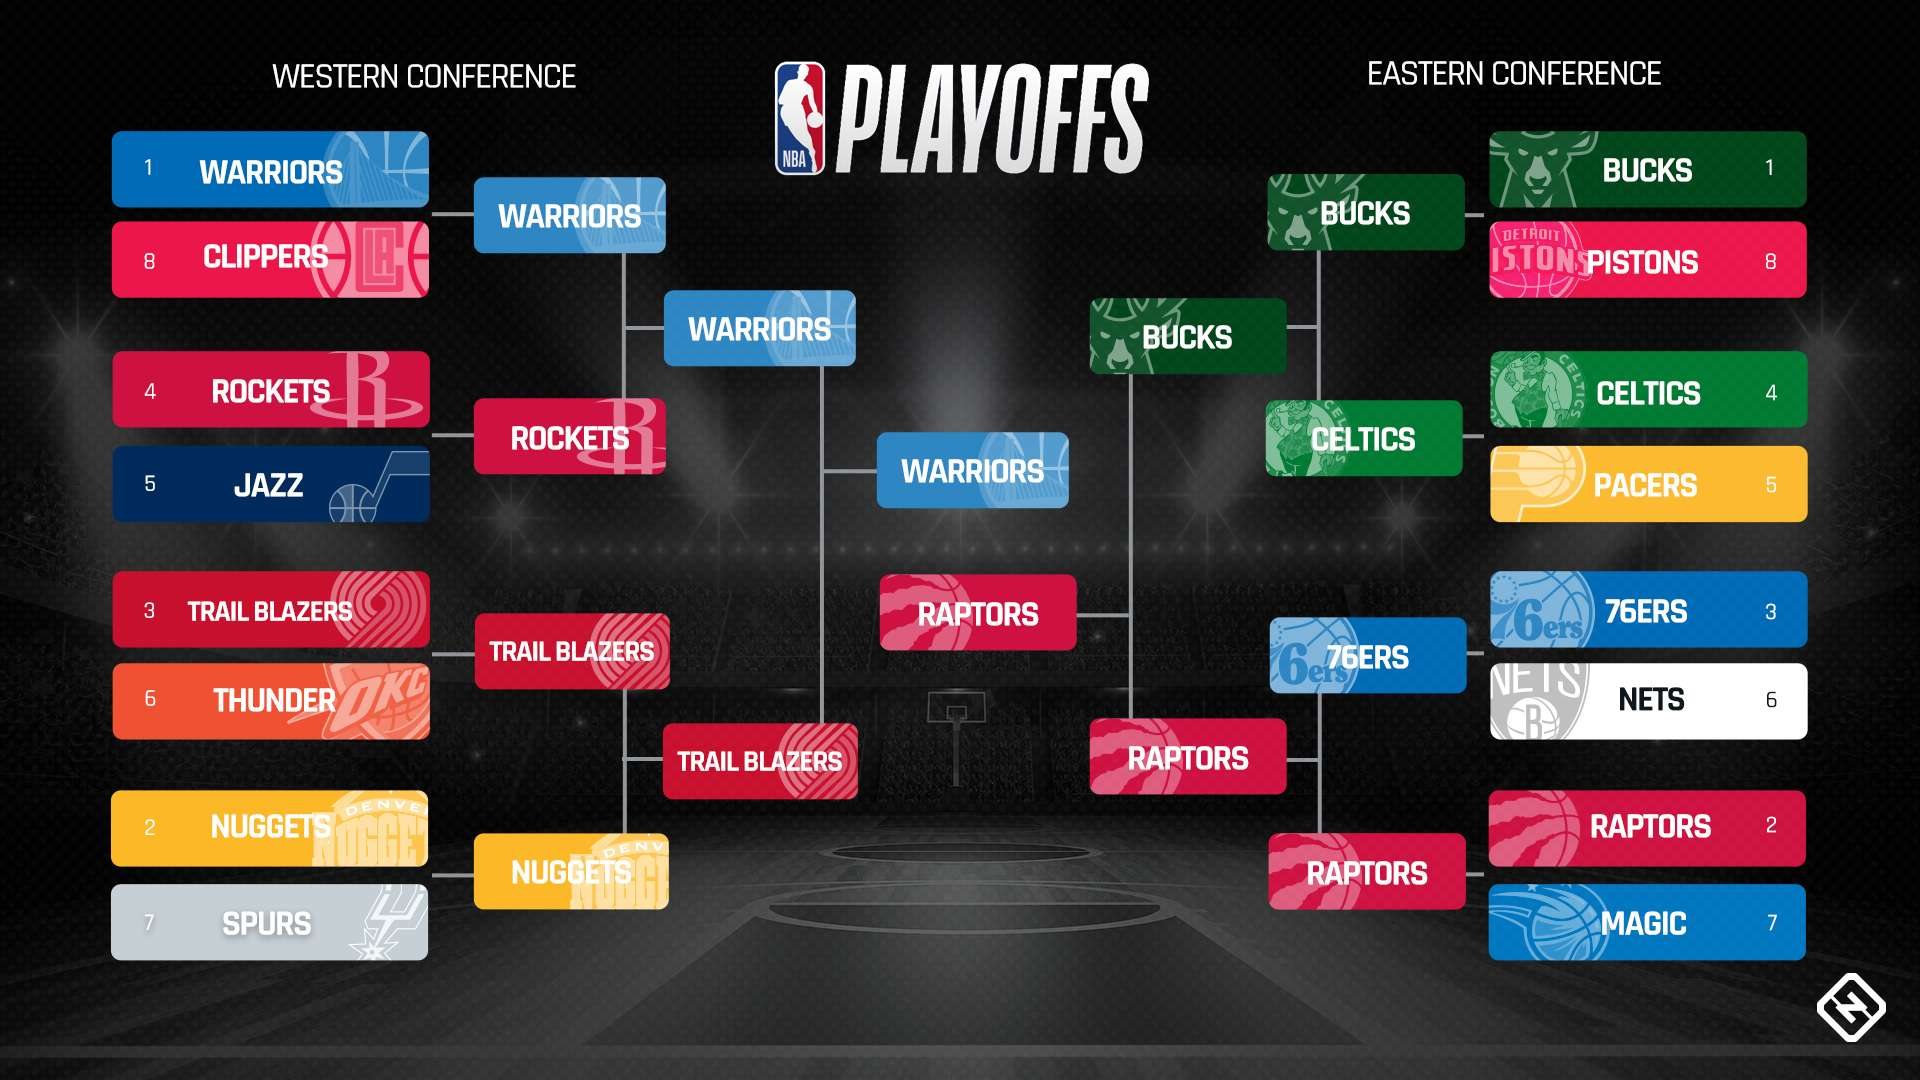 bucks playoff schedule 2020